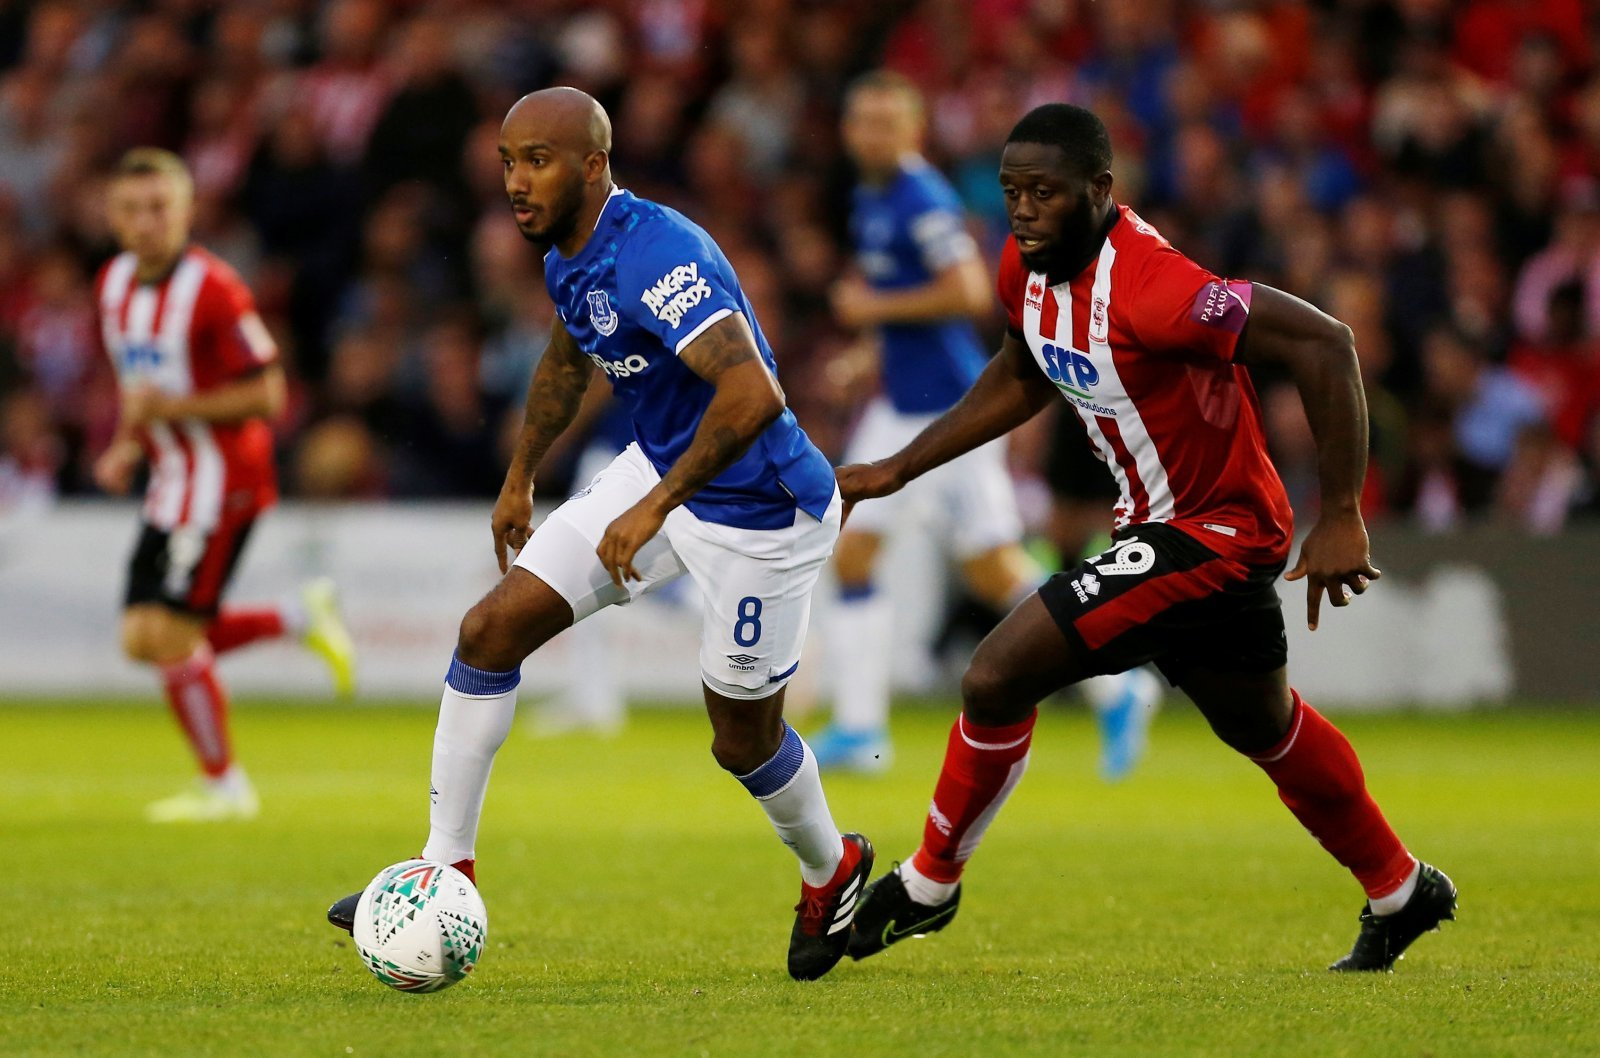 Everton: Delph keen to become a leader at Goodison Park